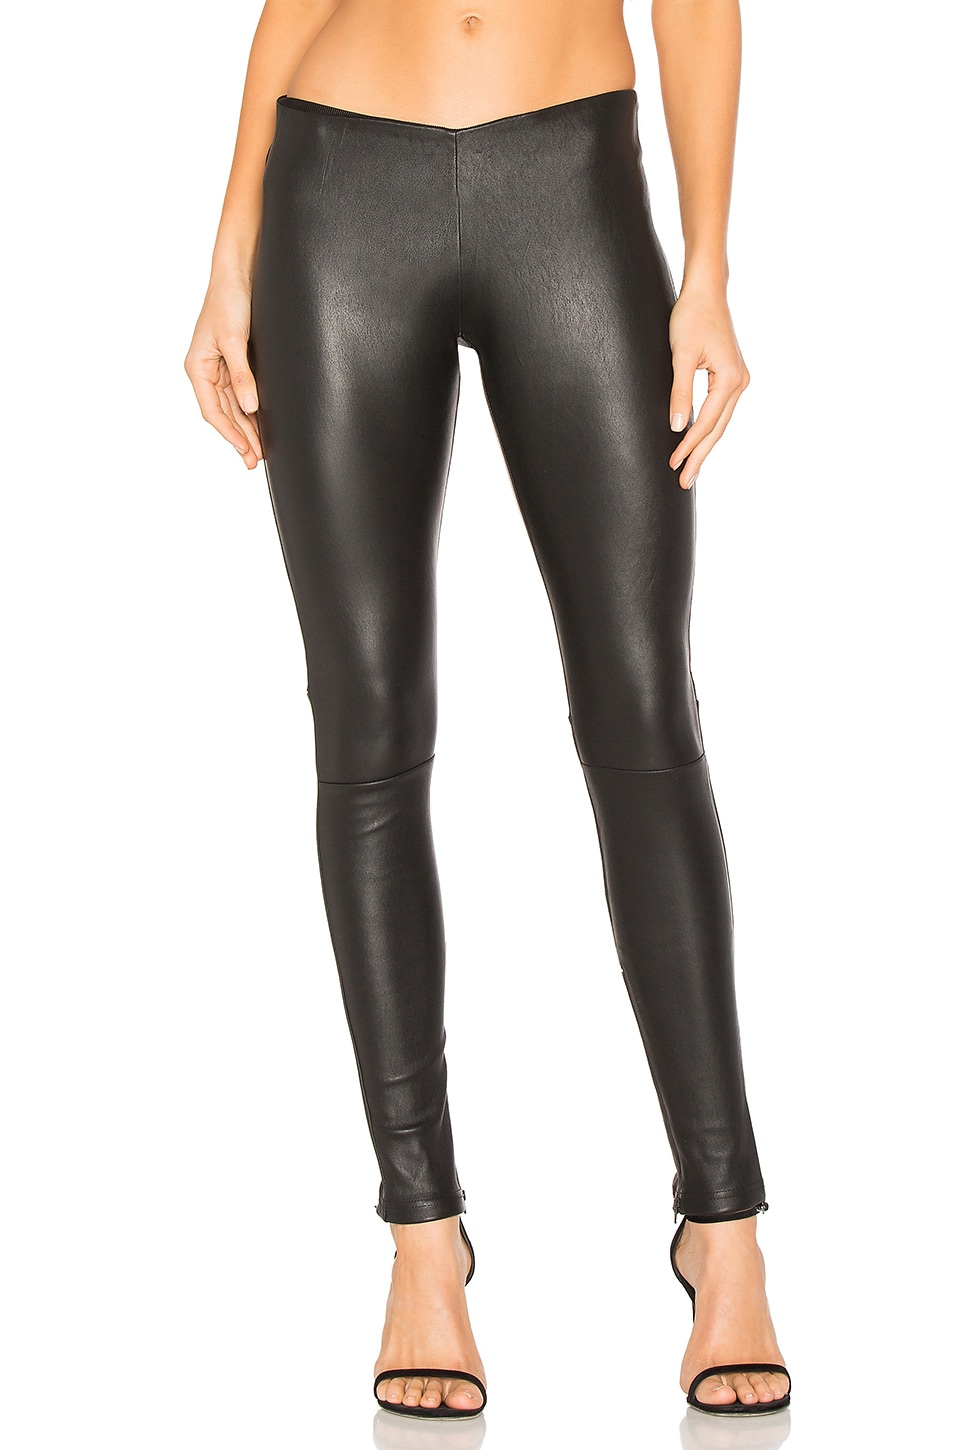 MLML Low Waistband Leggings in Black